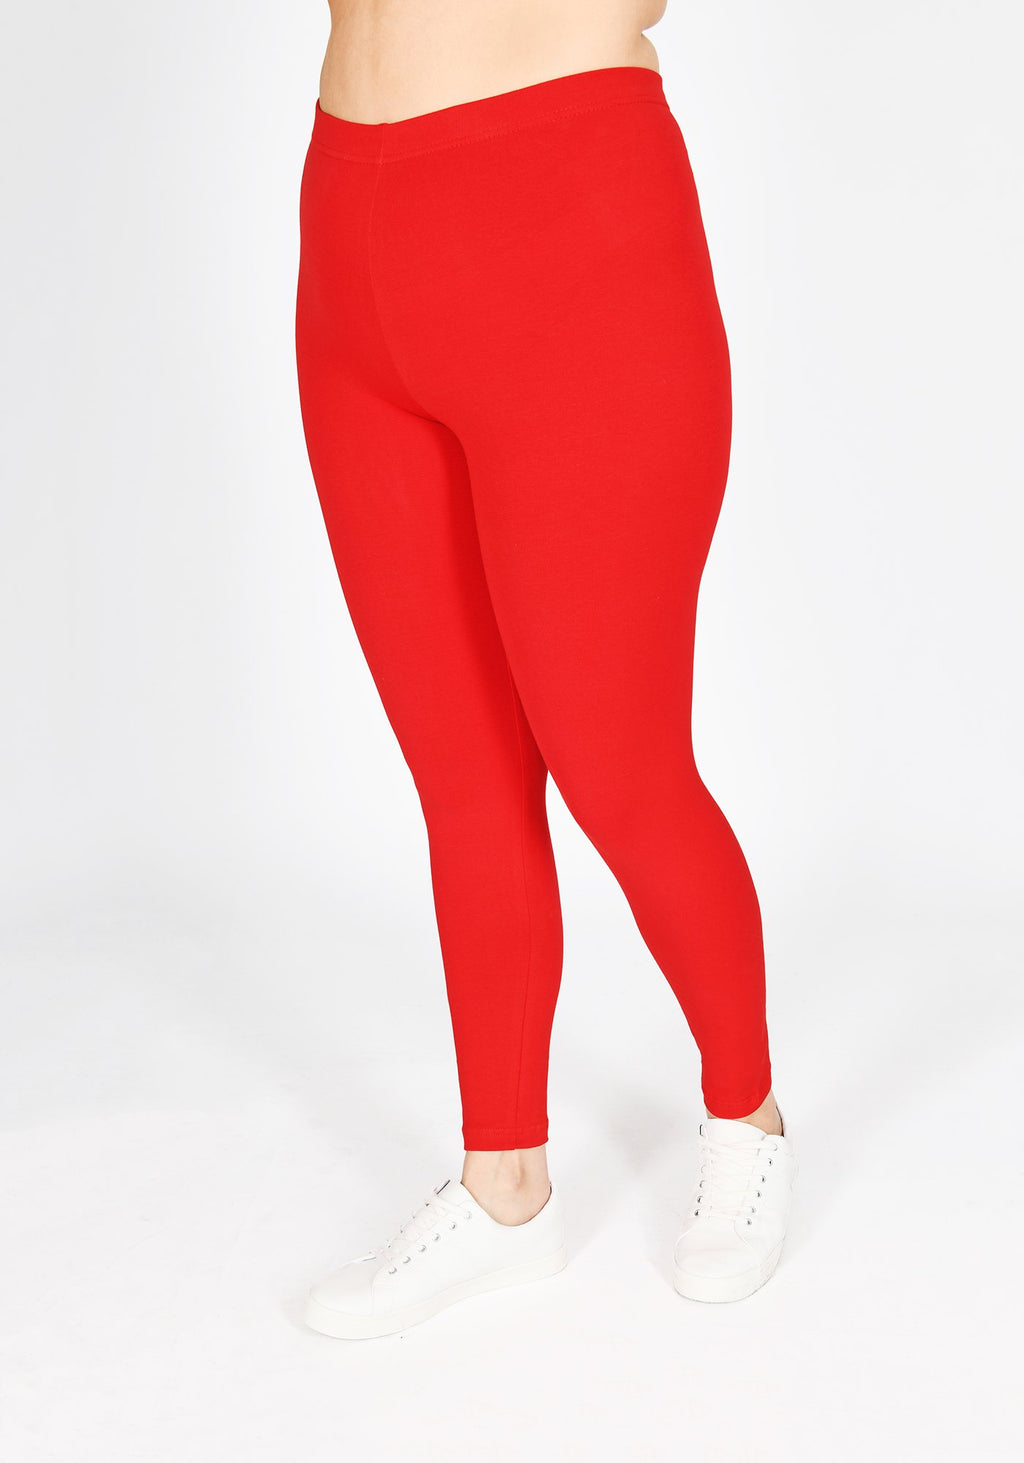 Classic Plus Size Poppy Red Leggings 1